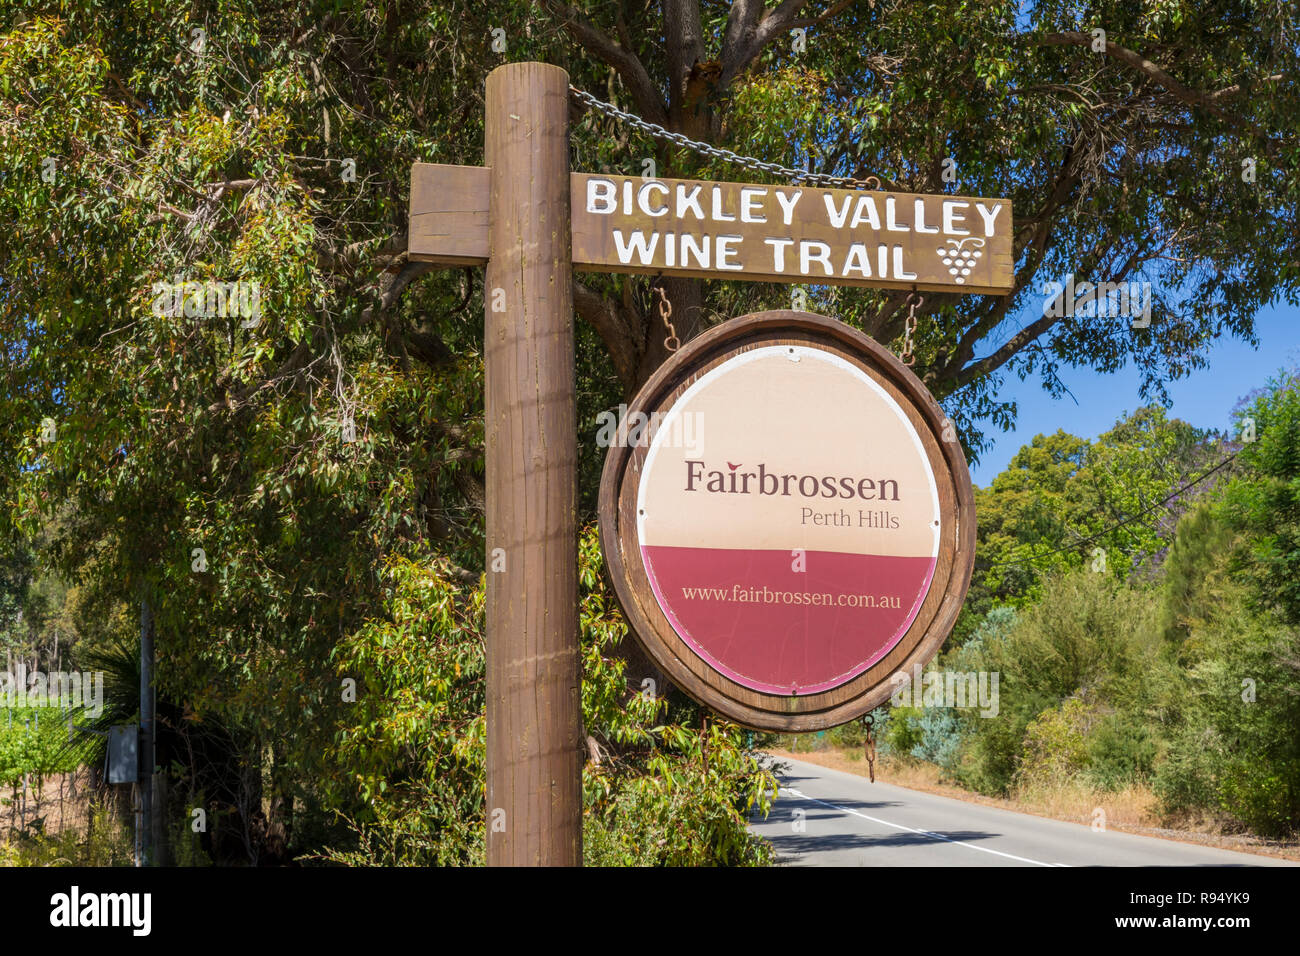 Fairbrossen Winery and Cafe sign along the Bickley Valley Wine Trail, Carmel, Western Australia - Stock Image